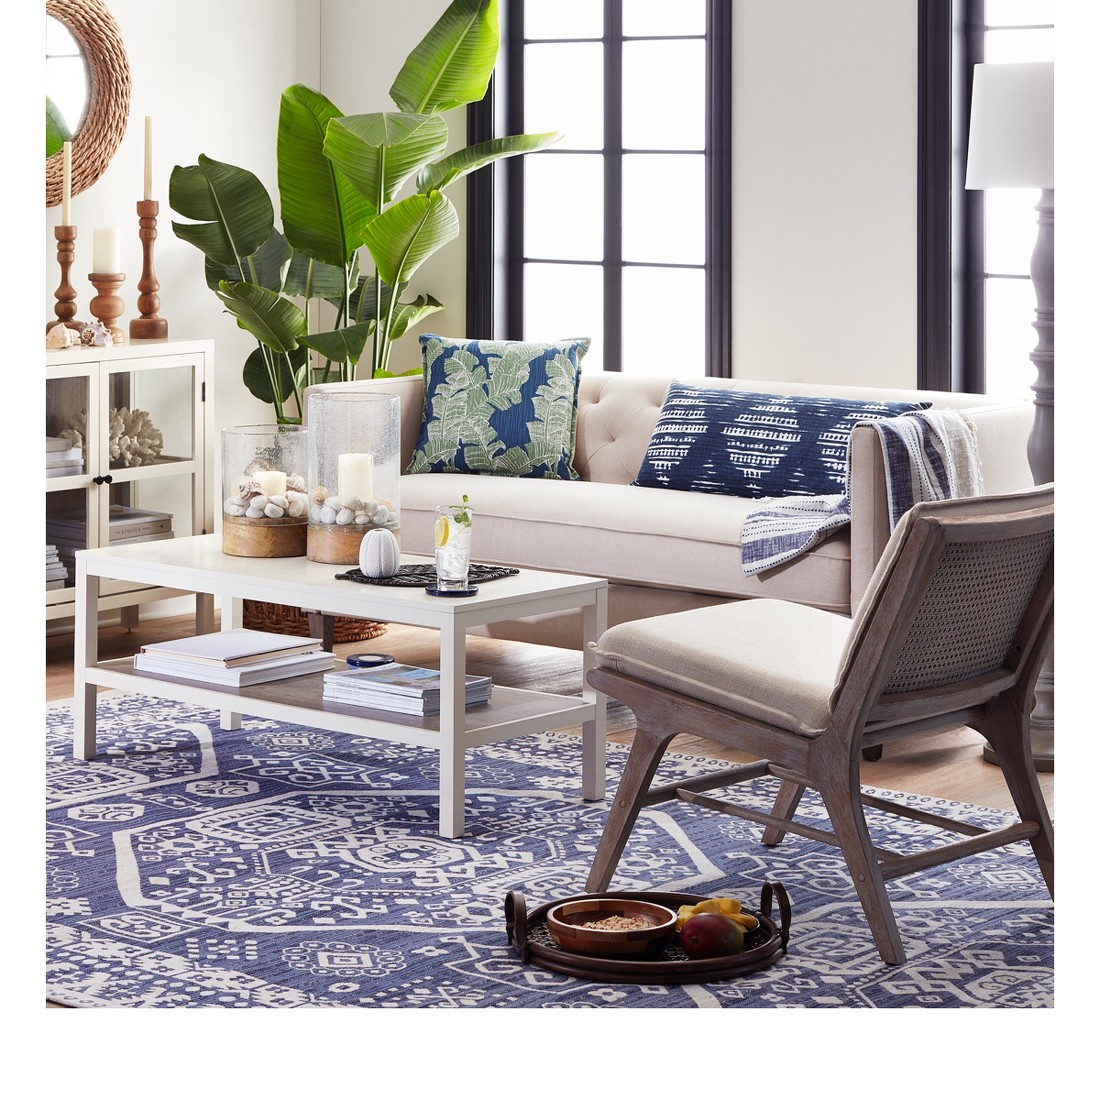 Inspiration Home Decor: Home Ideas, Design & Inspiration : Target